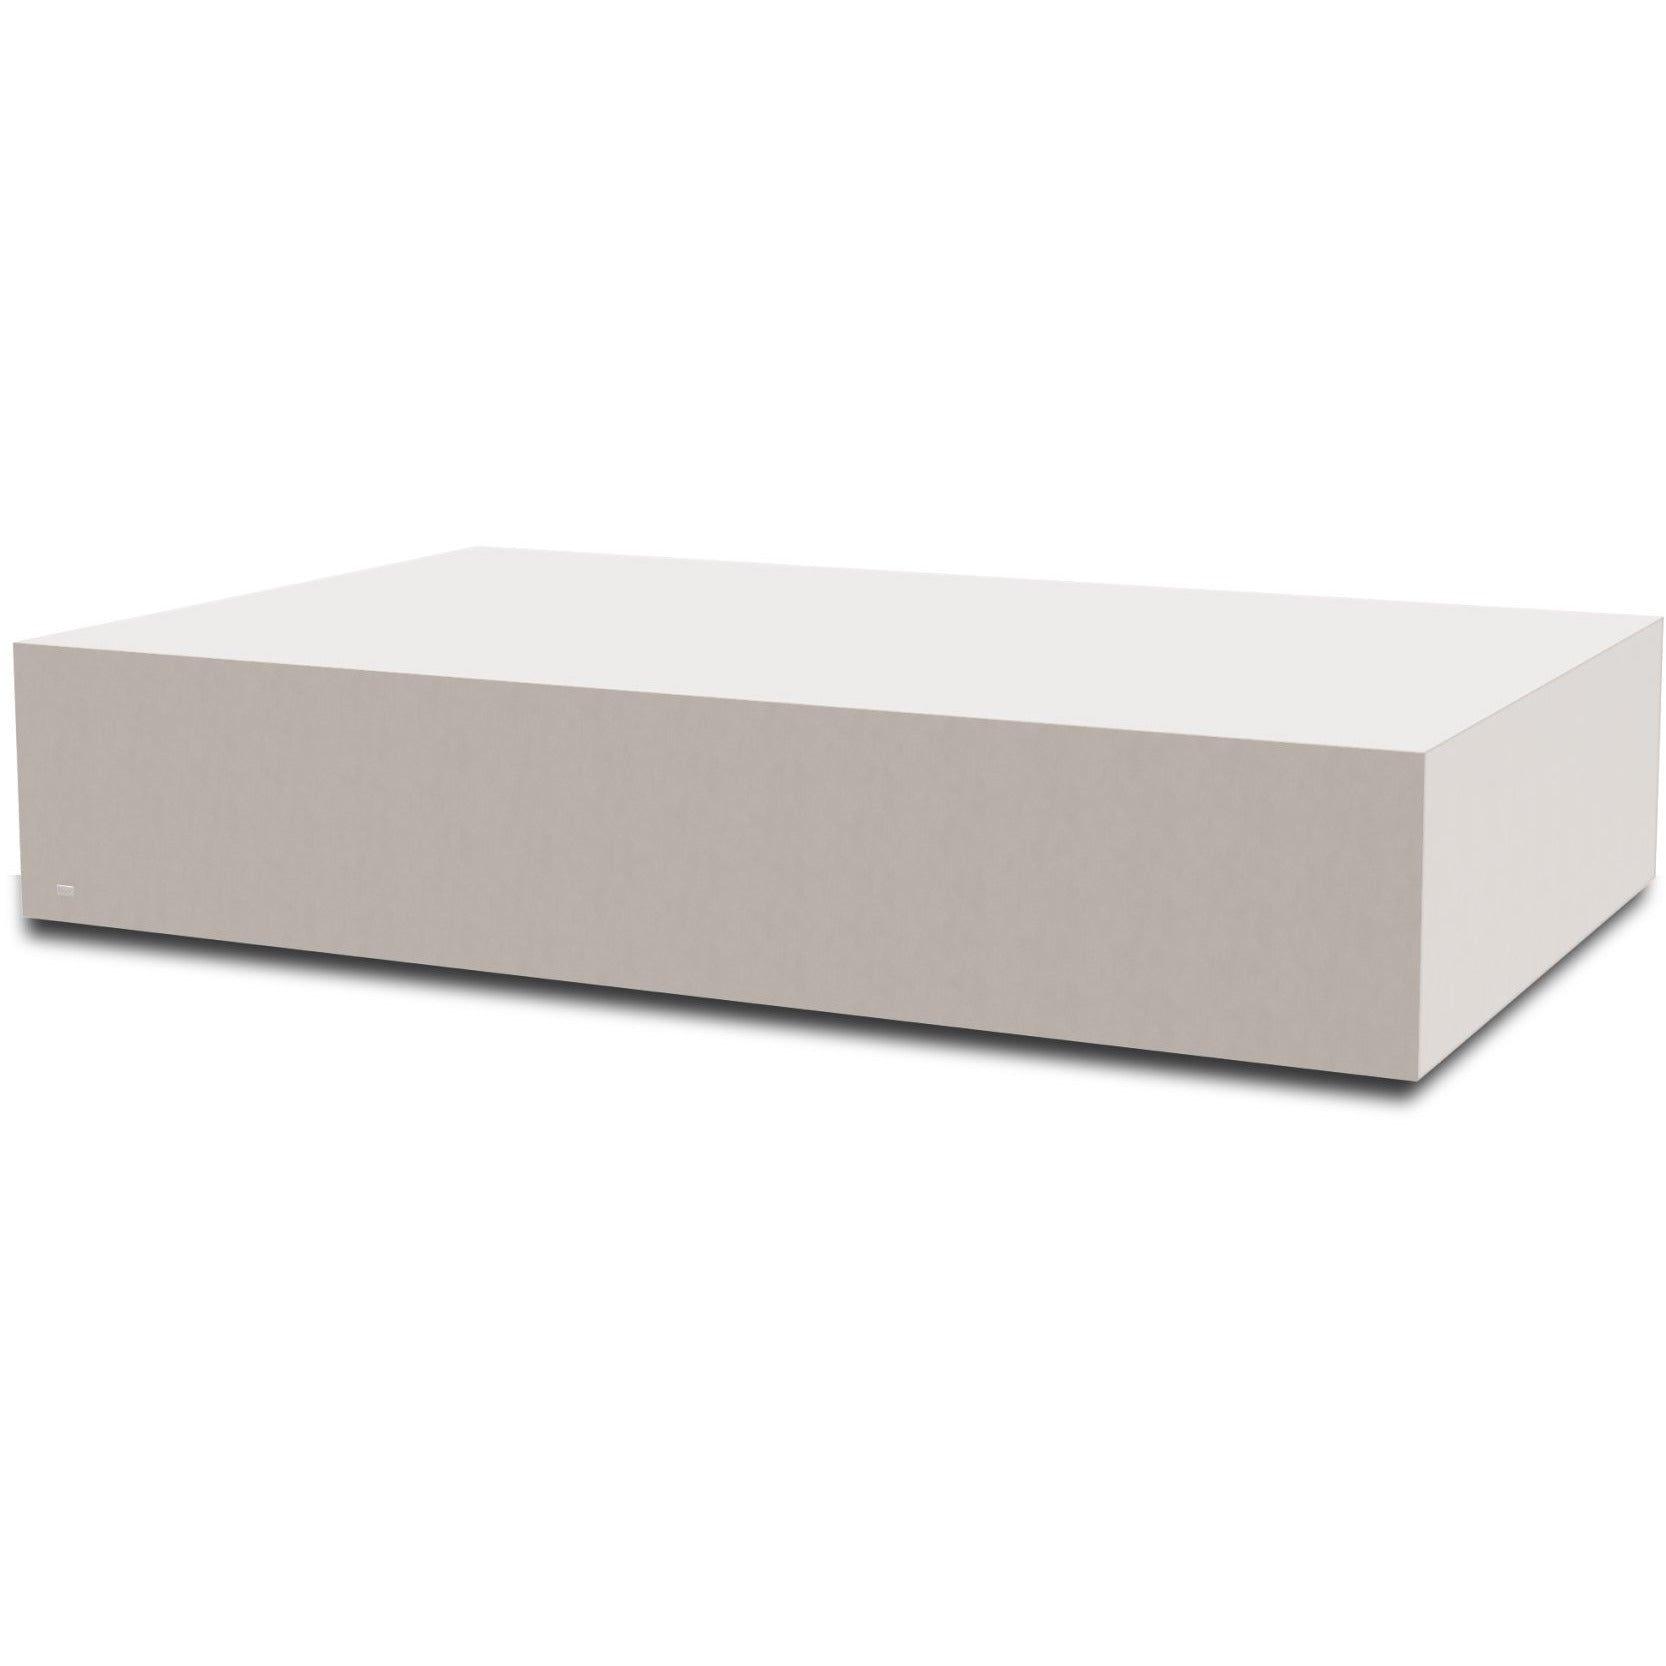 Bloc L5 Concrete Coffee Table - Outdoor Living Essentials